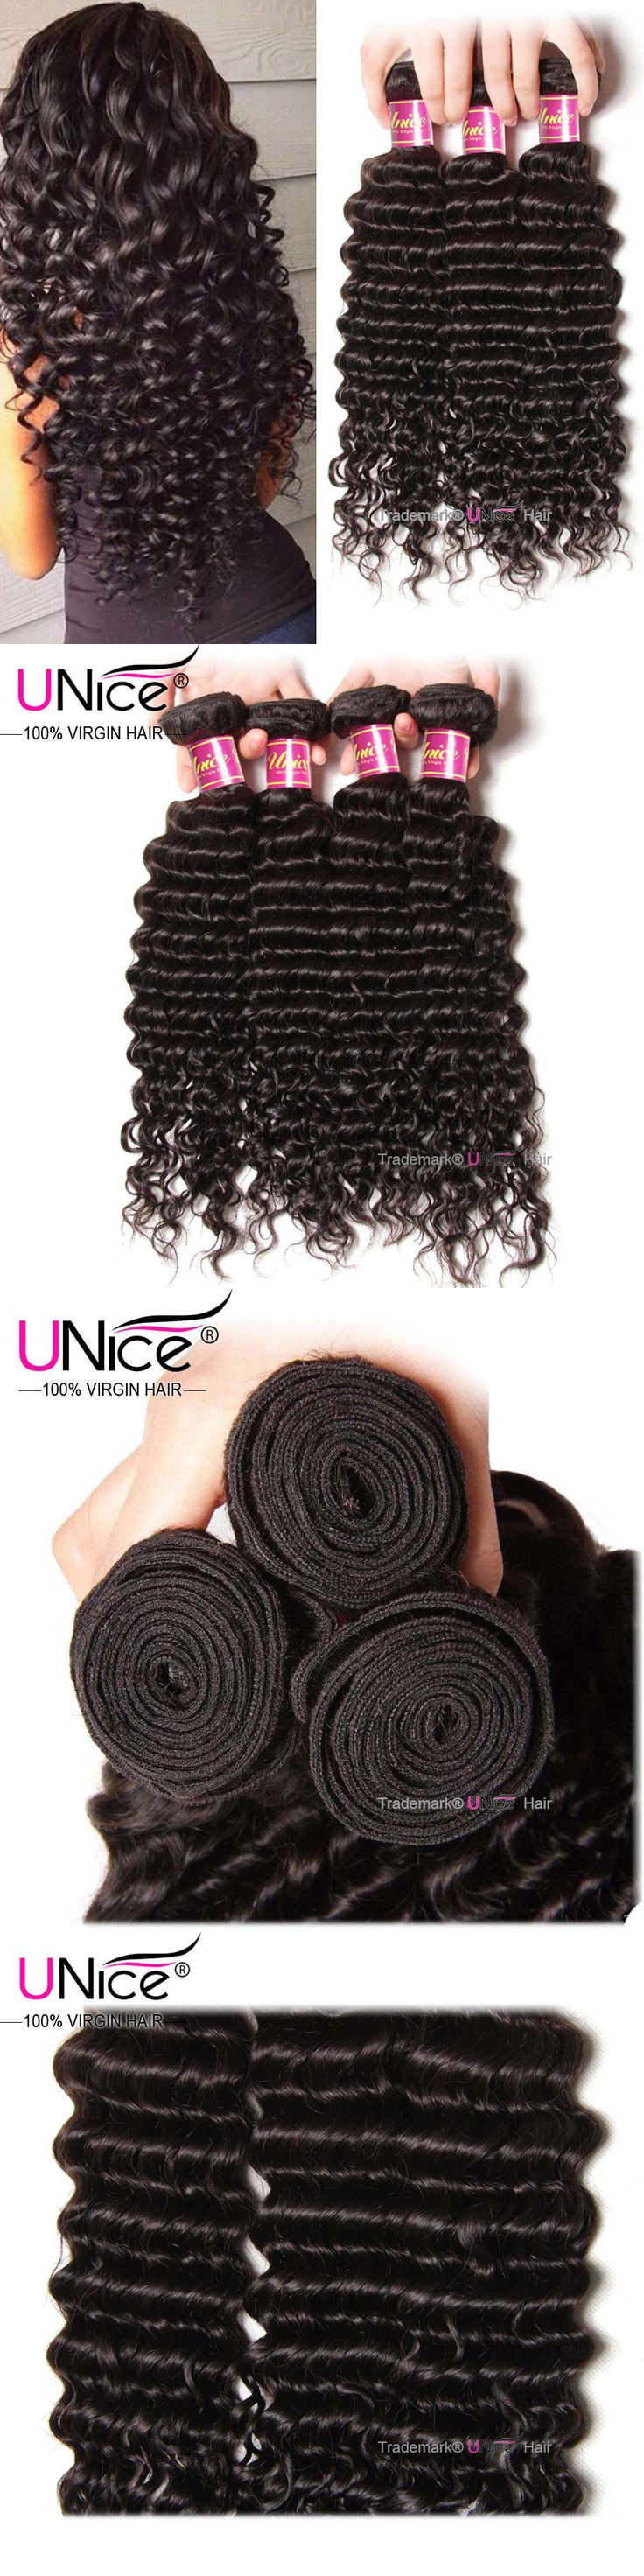 Hair Extensions: Brazilian Deep Wave Hair 3 Bundles Unice Curly Virgin Human Hair Extensions 300G BUY IT NOW ONLY: $130.14